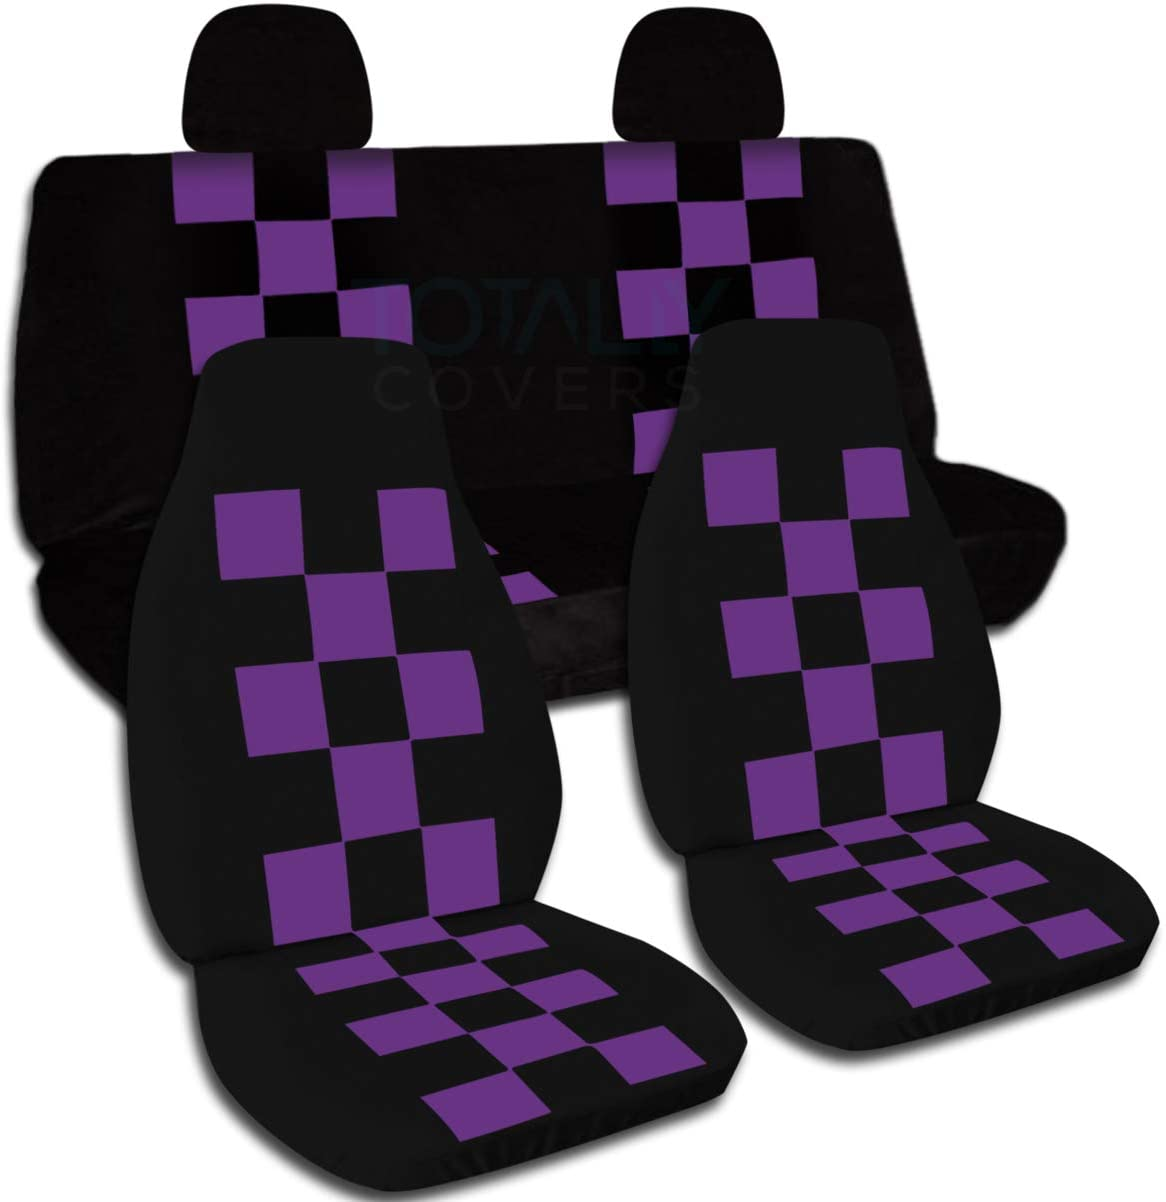 Totally Covers Checkered Car Seat Covers w 2 Rear Headrest: Black & Purple Checkers Universal Fit Full Set Front Buckets & Rear Bench Option for Airbag/Seat Belt/Armrest/Release/Lever/Split